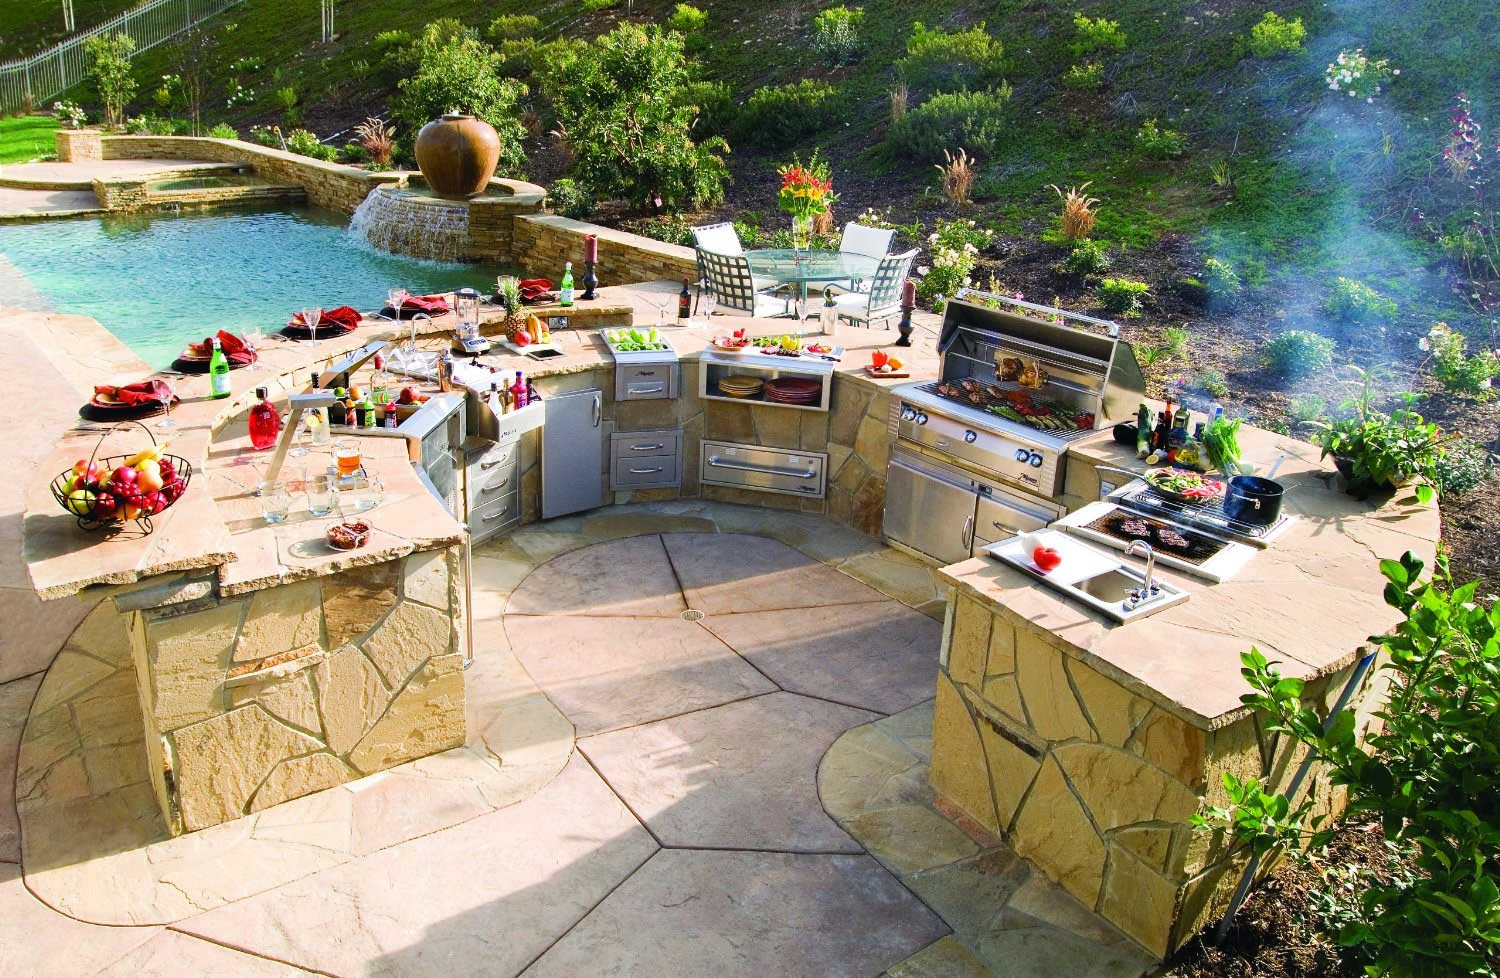 Luxury Outdoor Grills Reviewed: What to Expect From Best ... on Exterior Grill Design id=12612